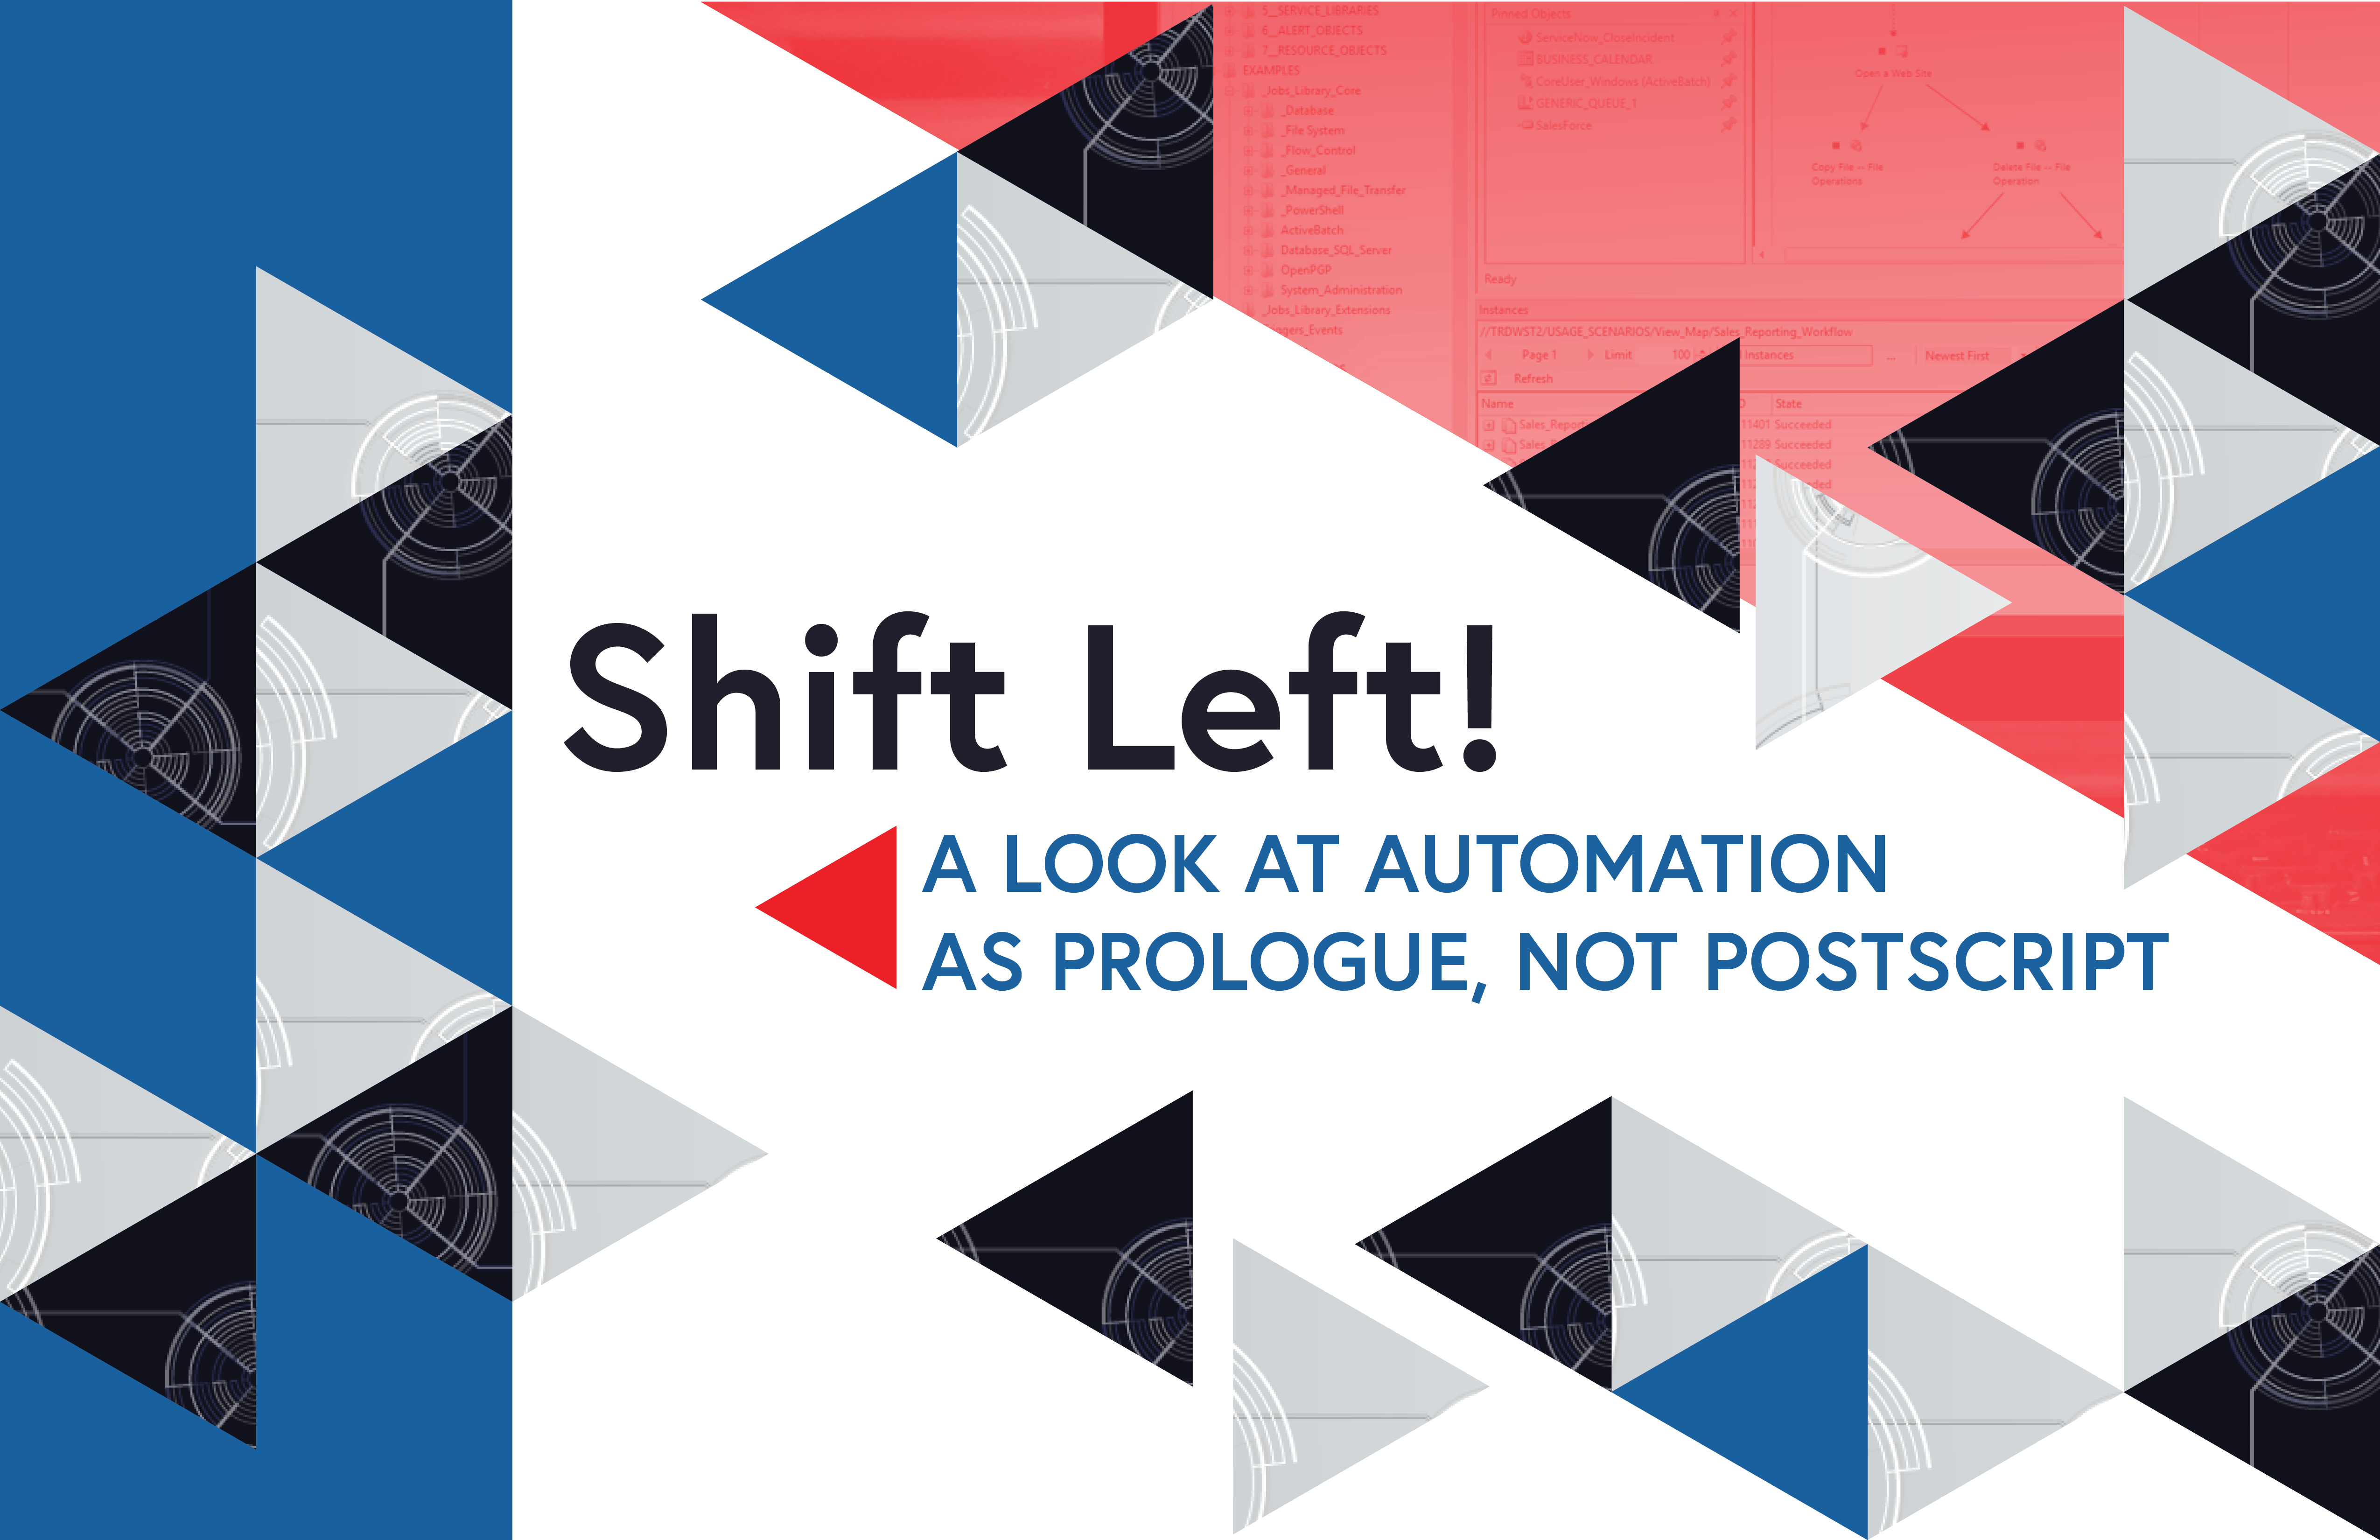 Shift Left! A Look at Automation as Prologue, Not Postscript